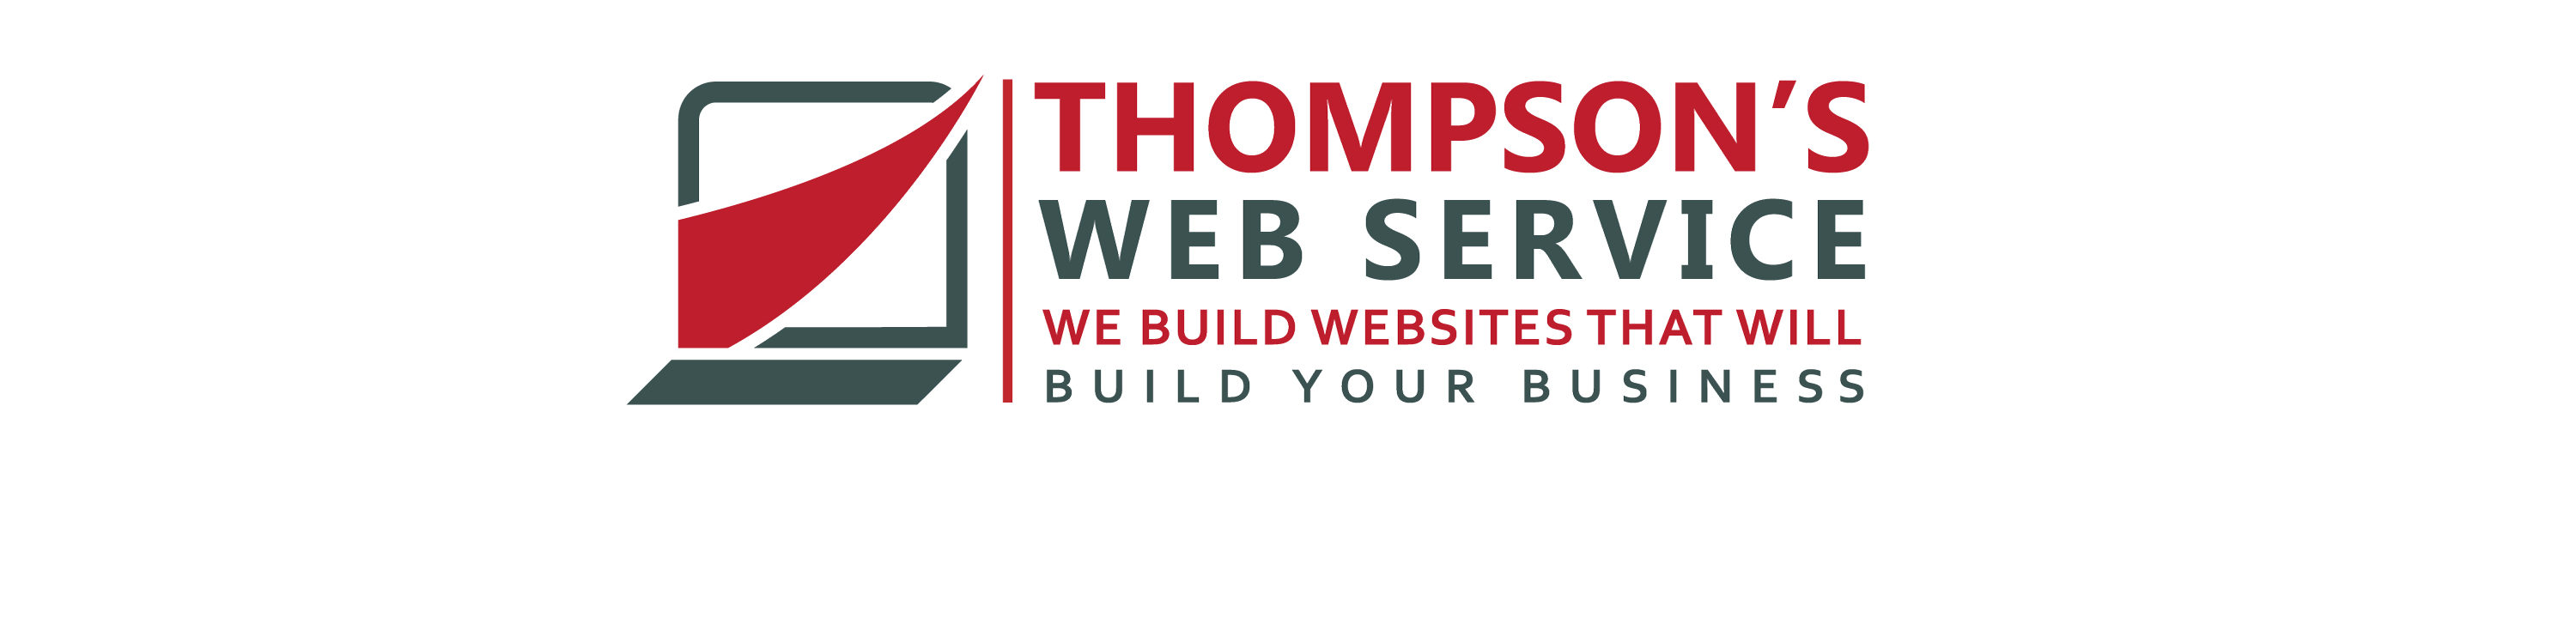 Thompson's Web Service